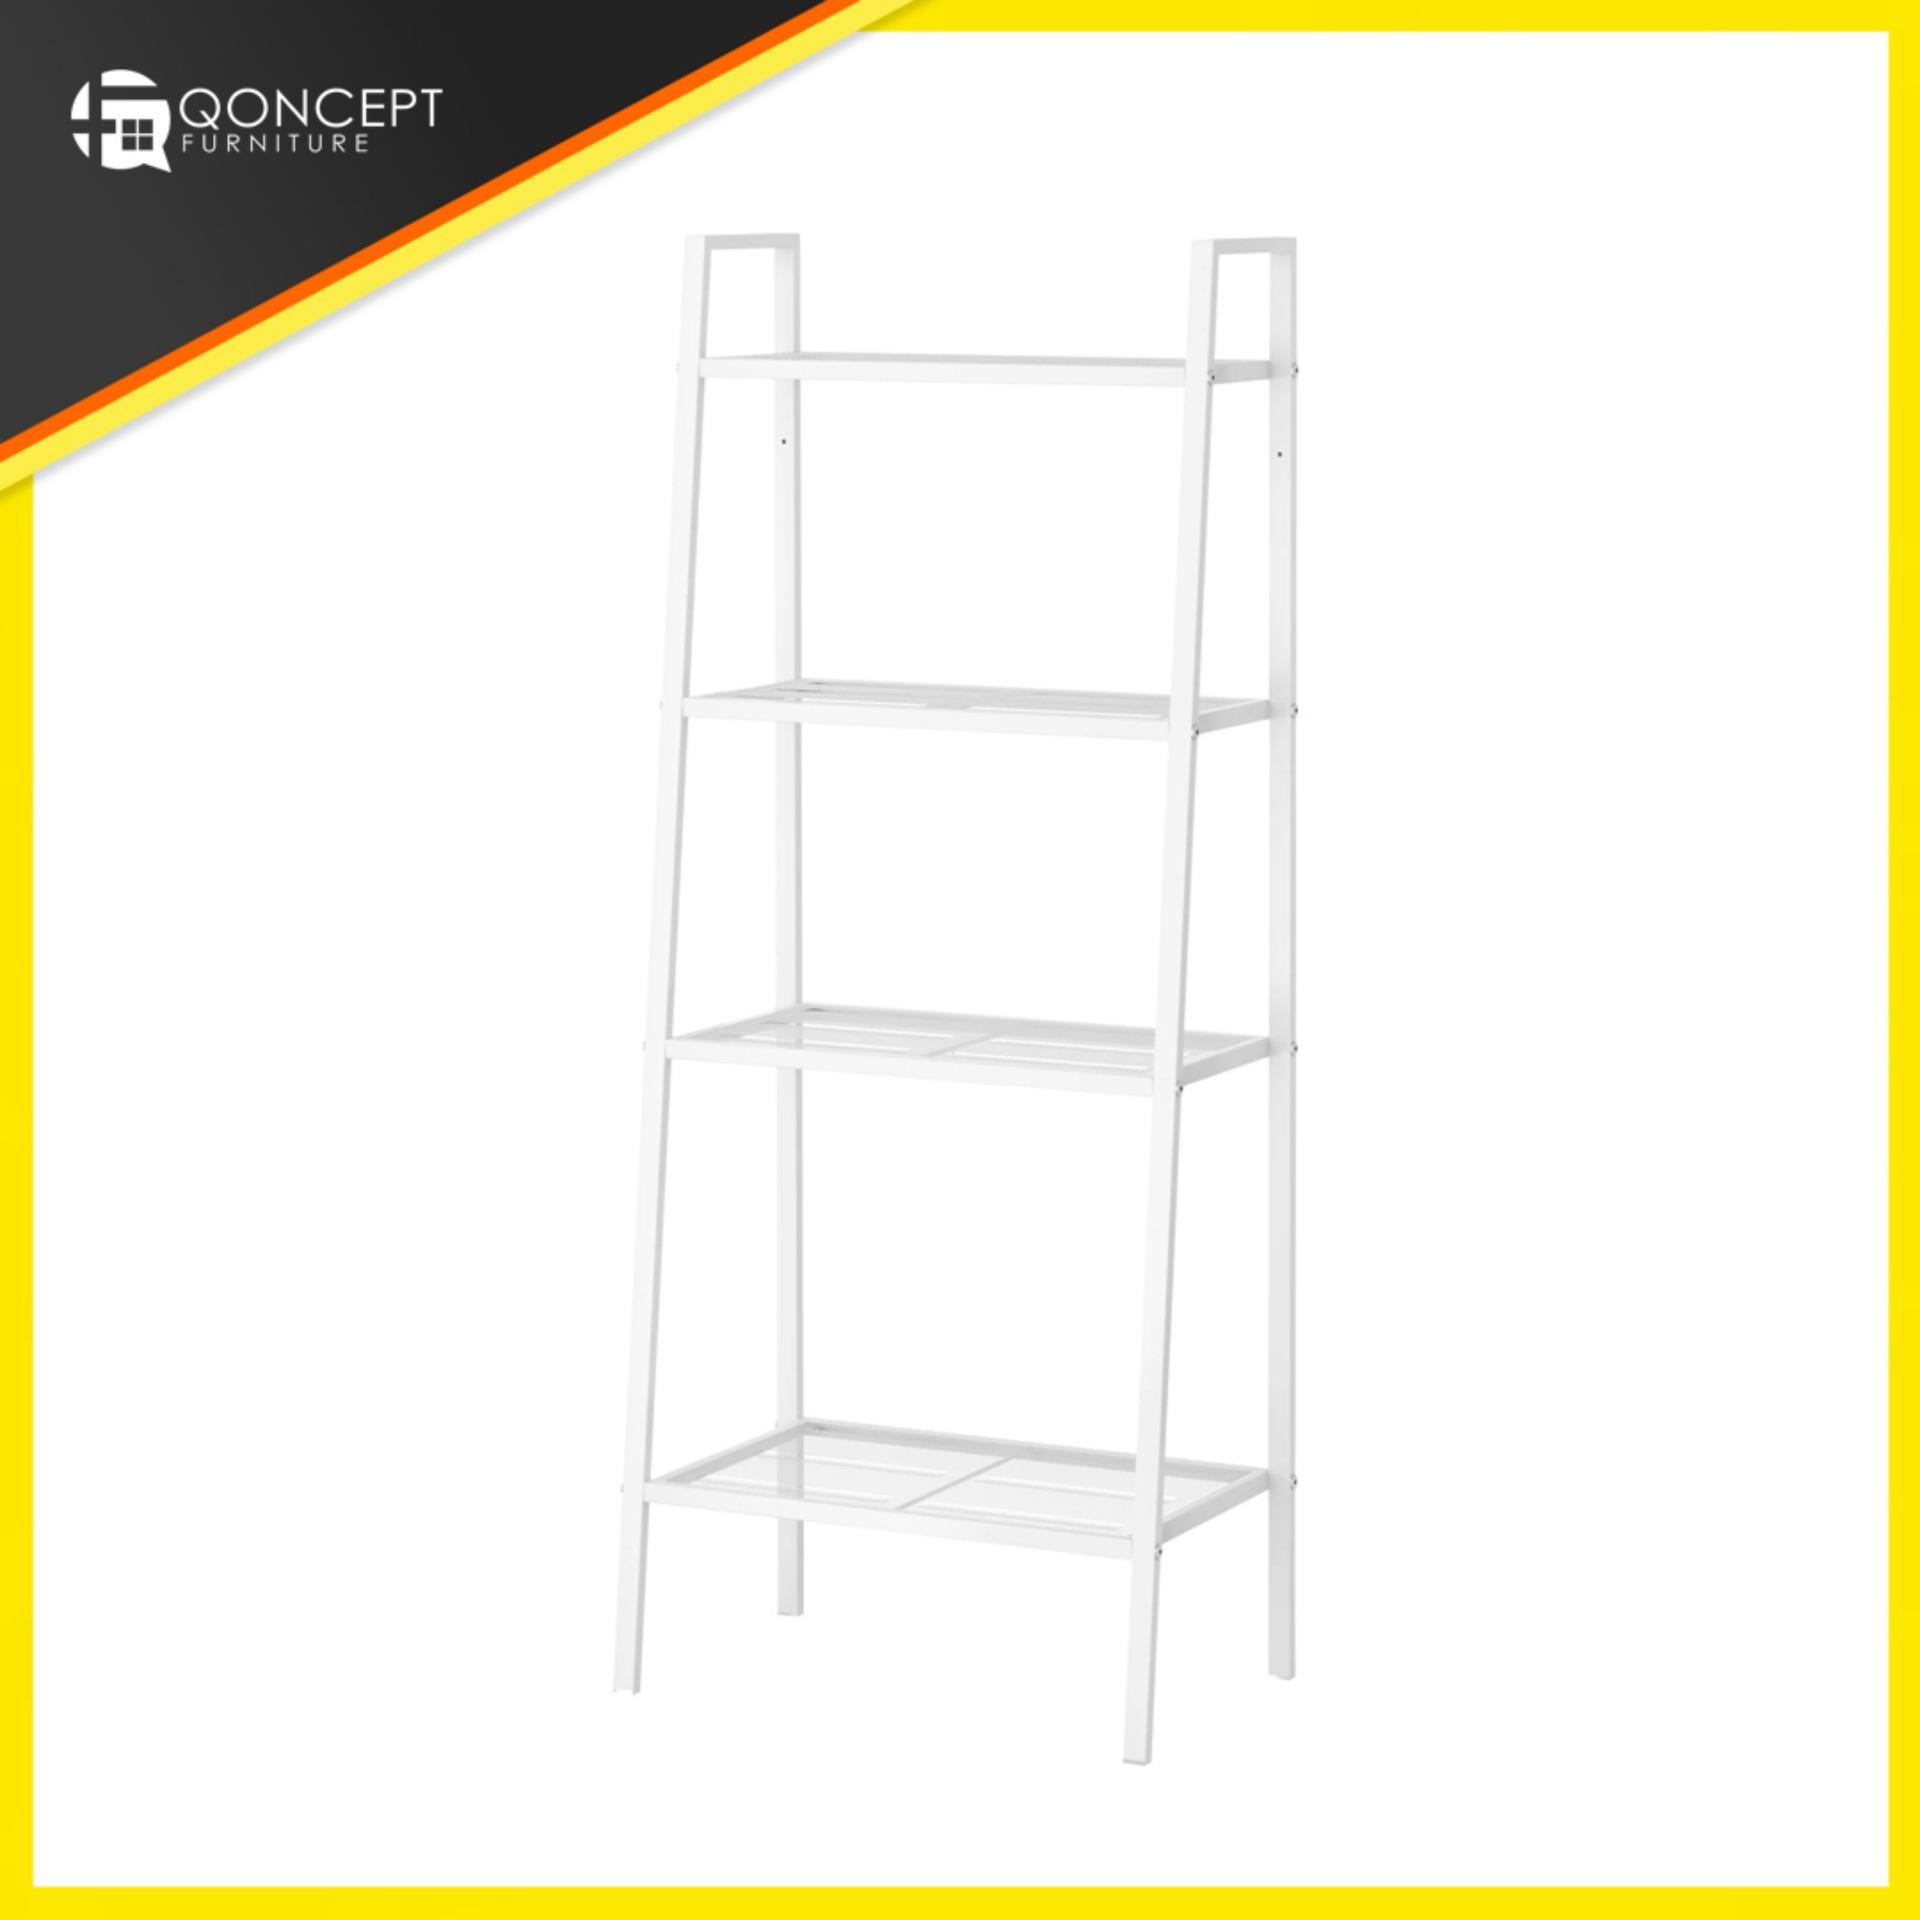 space saver for kitchen brands review floating shelves lazada lerberg shelf unit white desk with rustic coat hooks ikea hanging cube pottery barn mantel entranceway shallow built